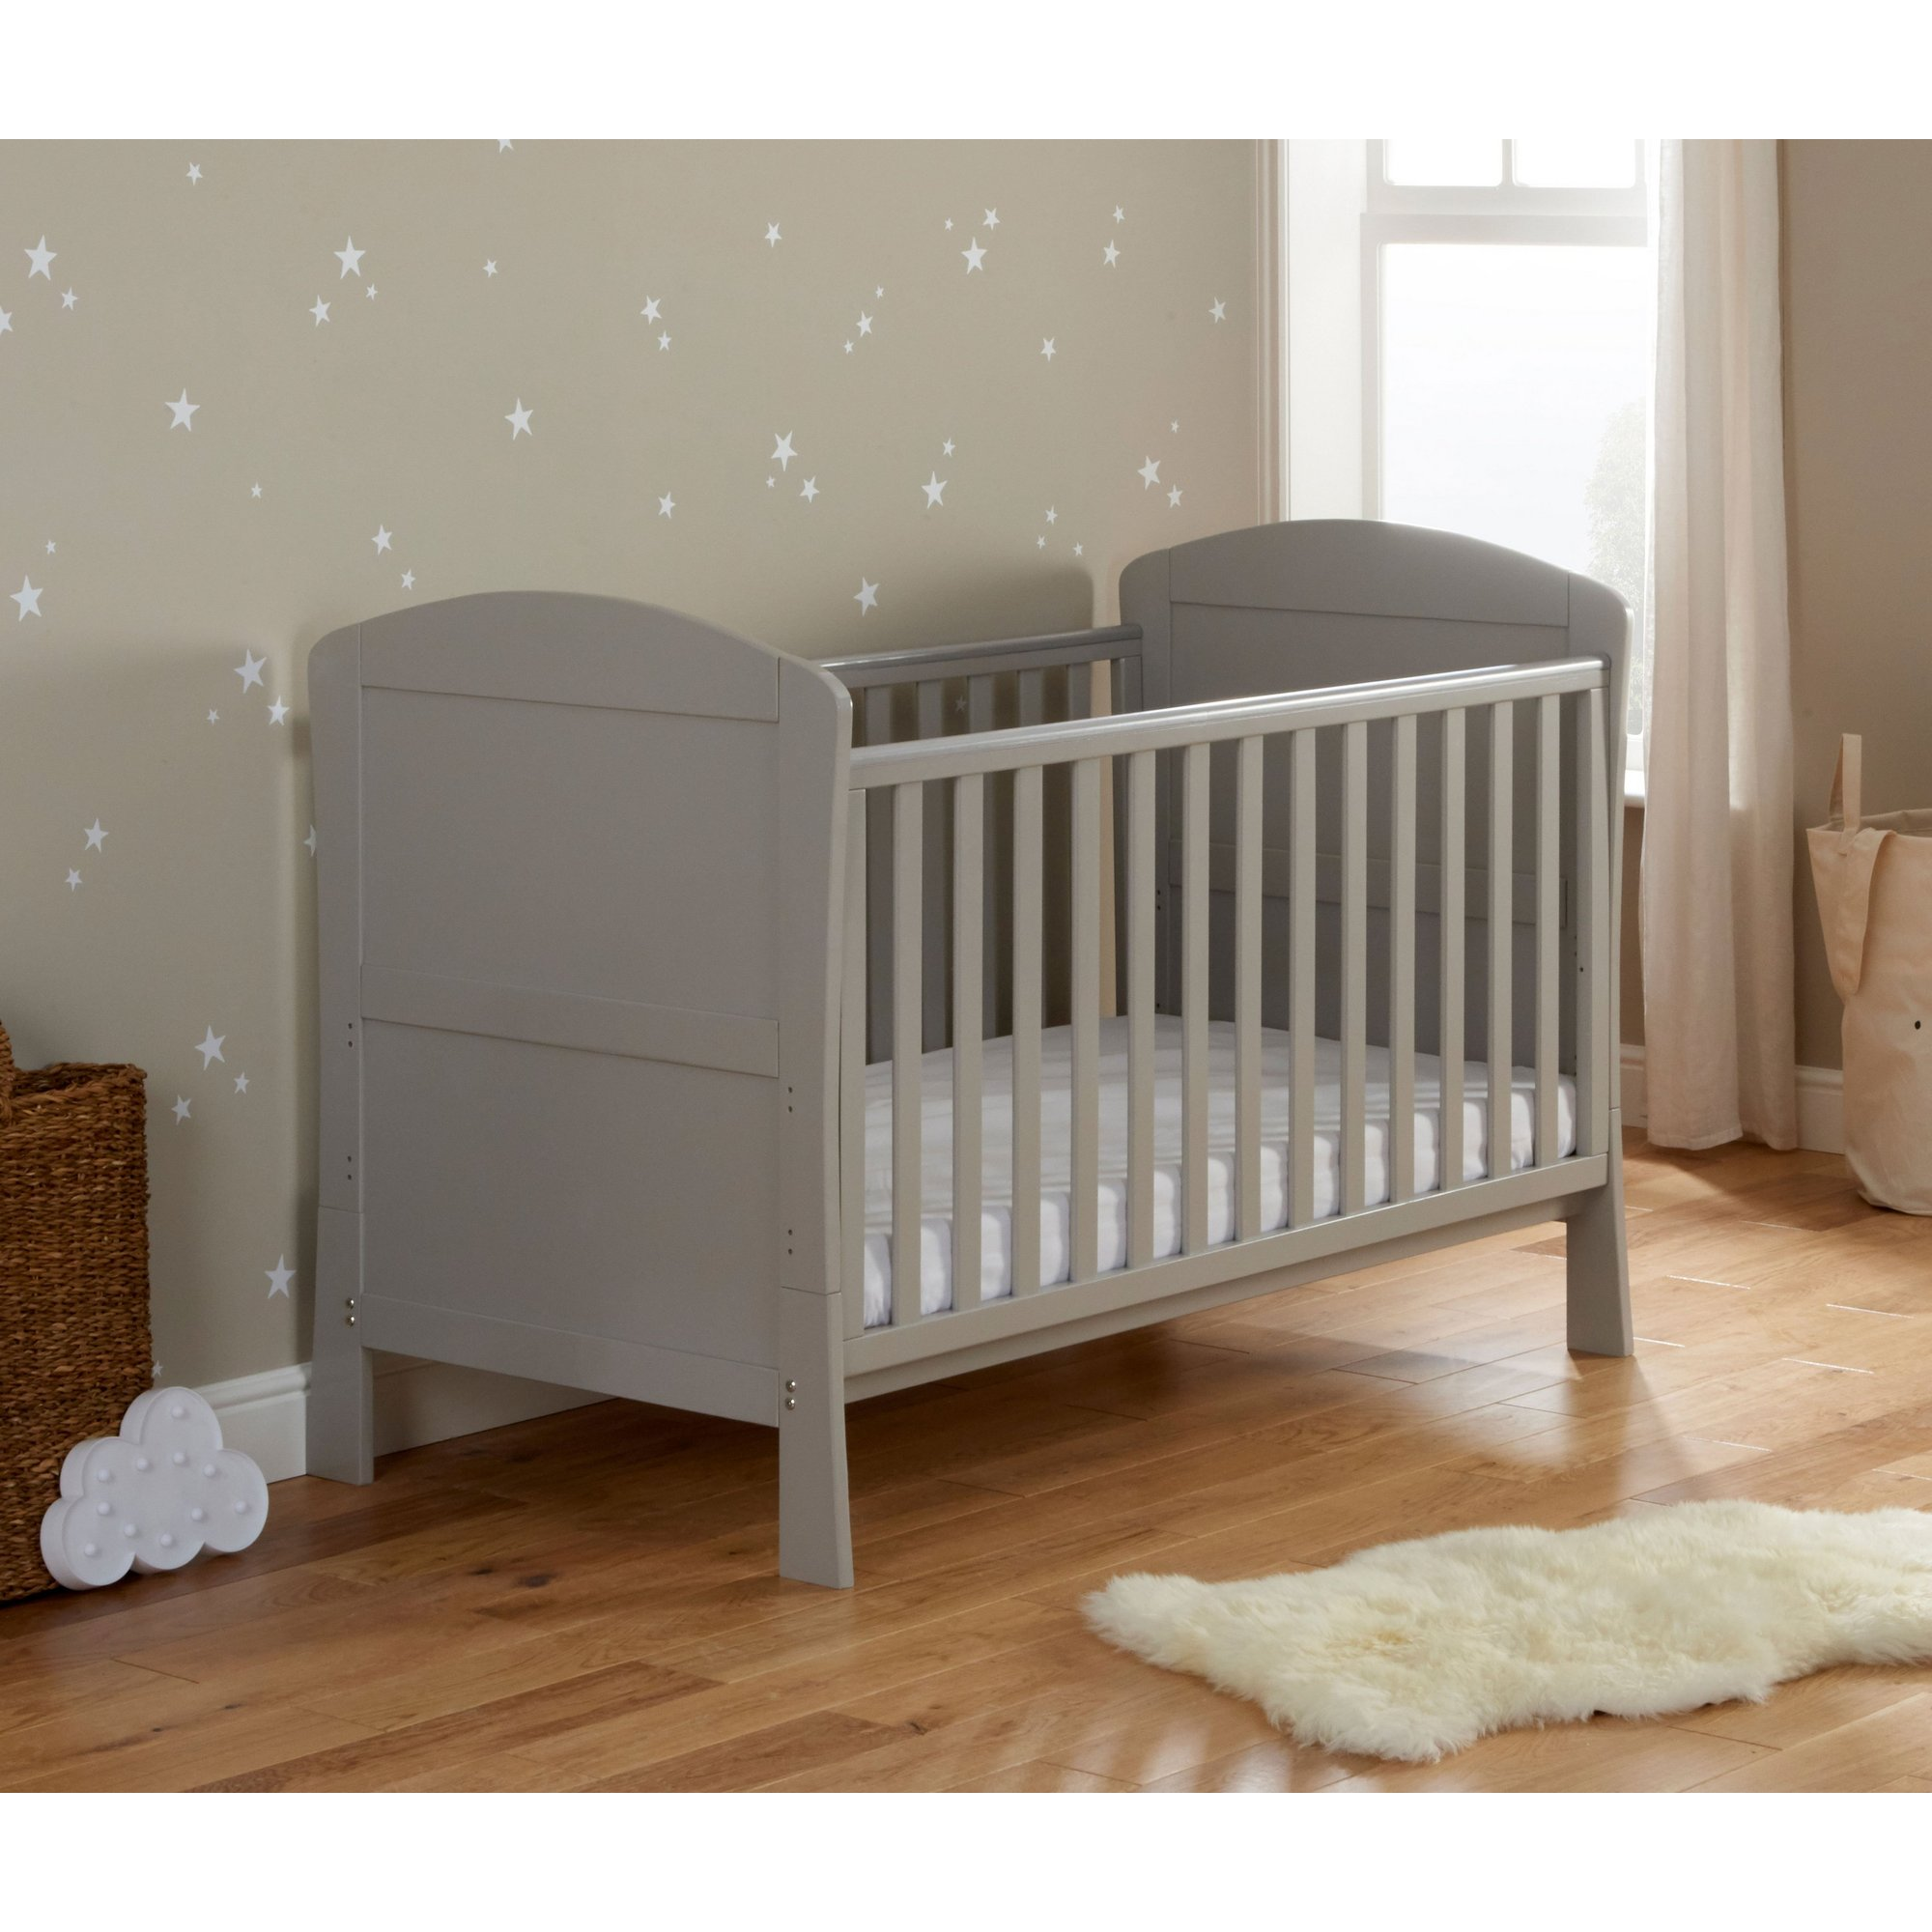 Image of Aston Grey Drop Side Cot Bed